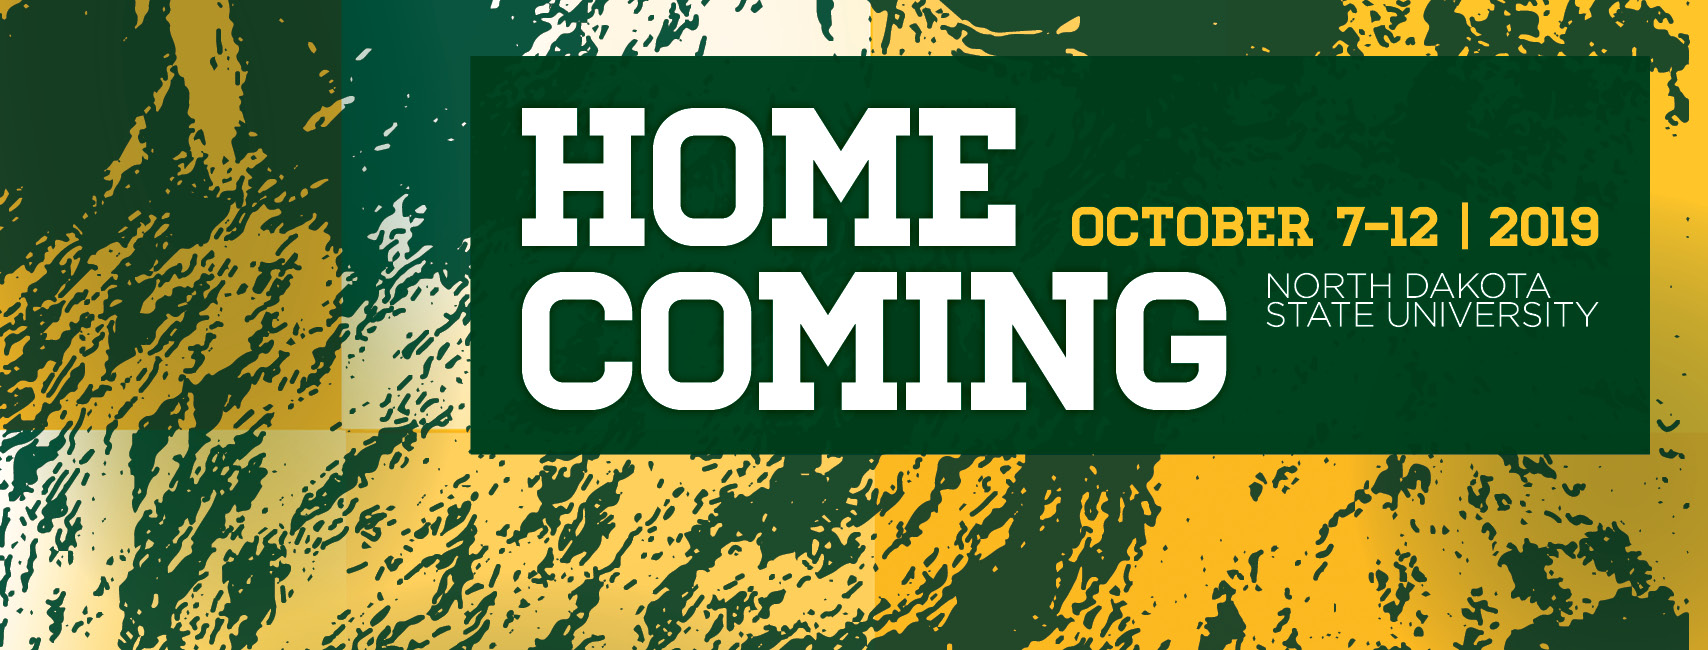 ndsu homecoming 2019 facebook cover